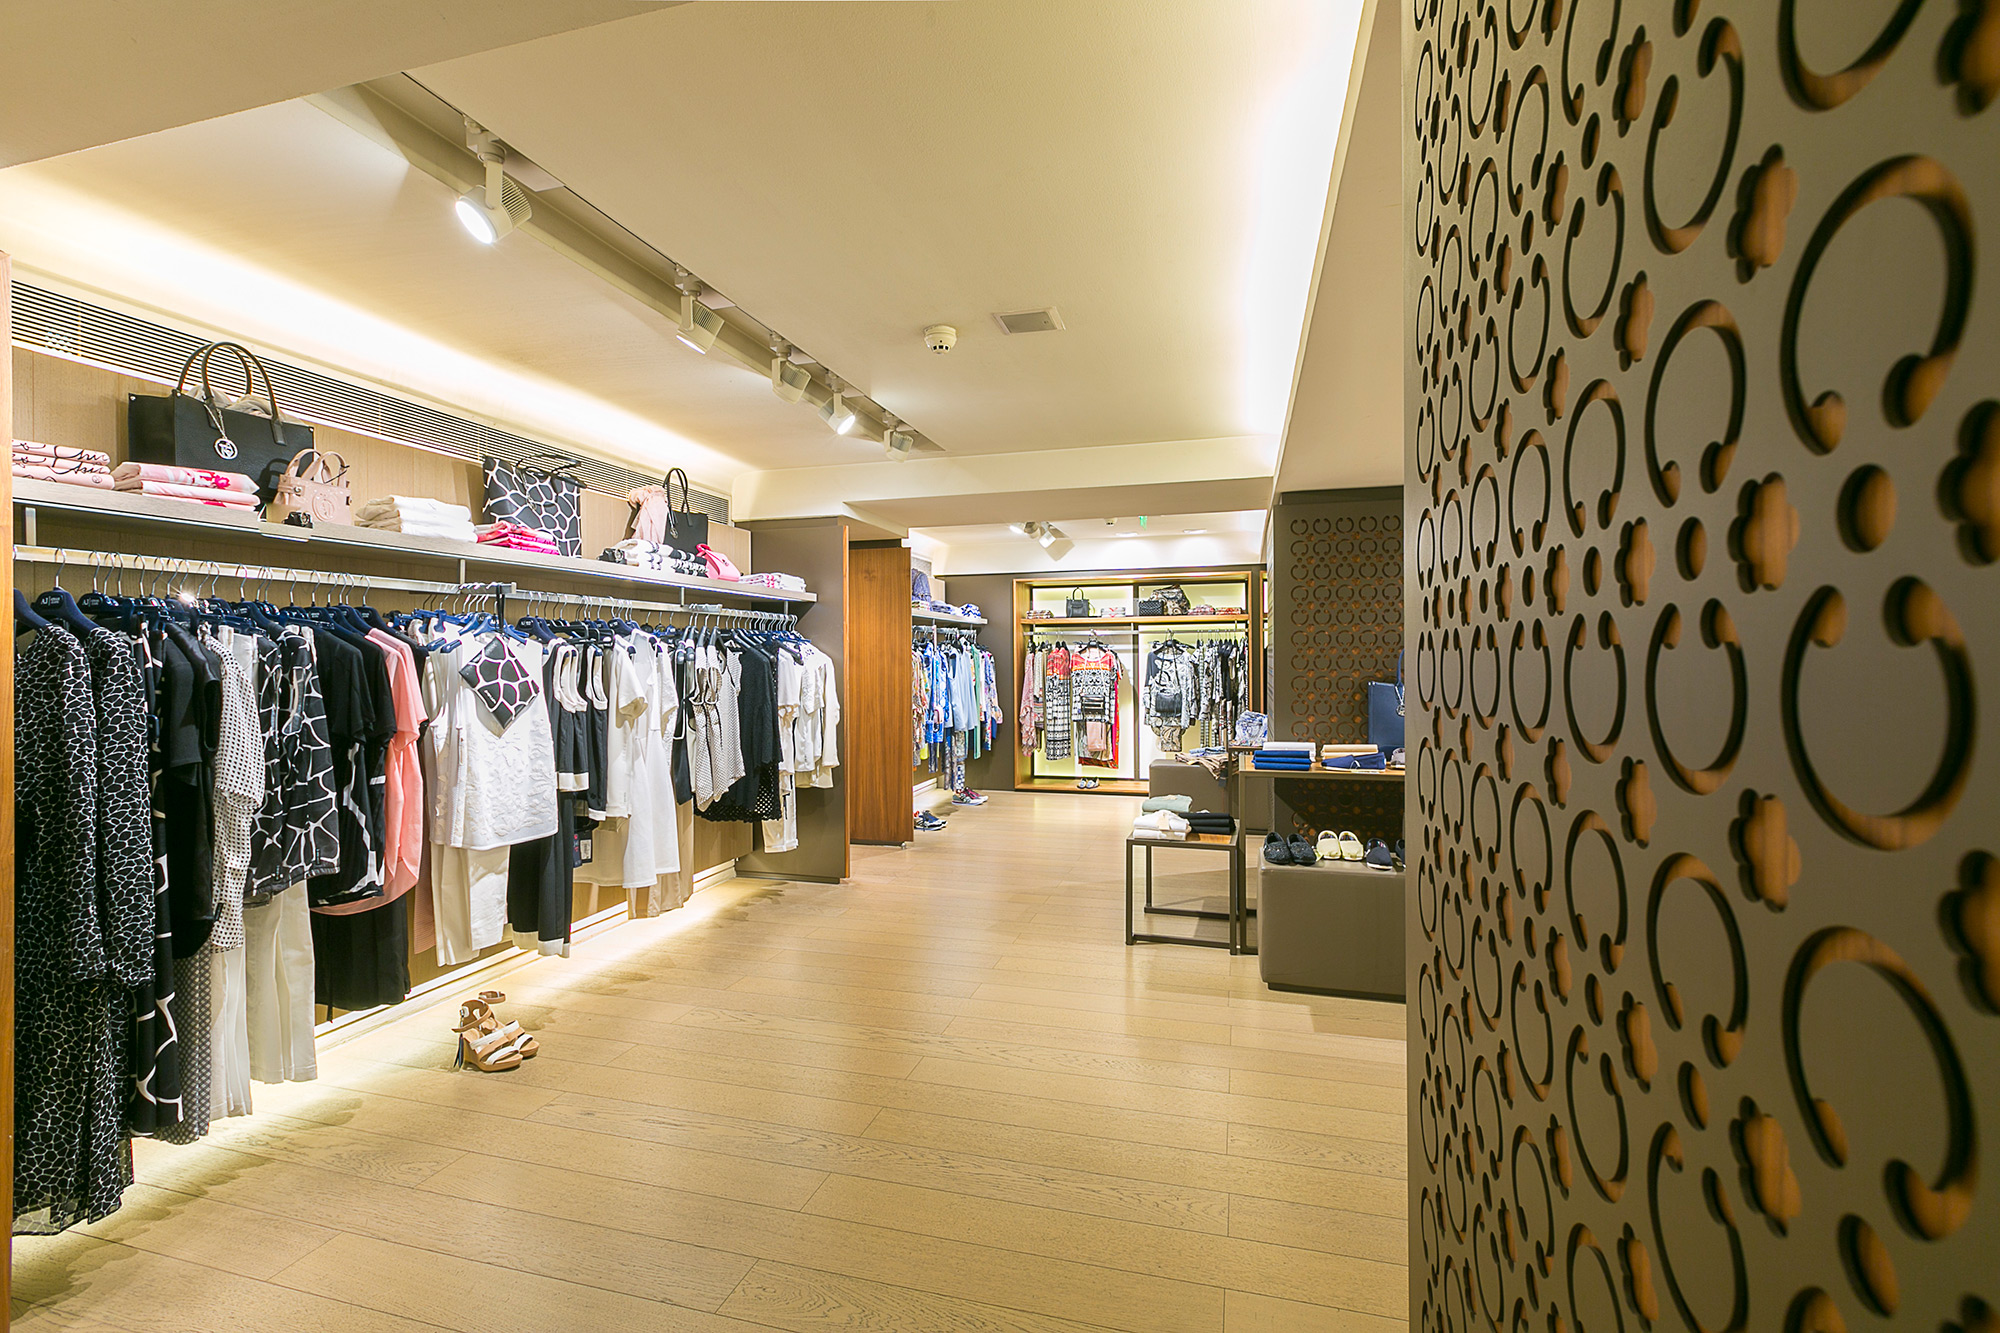 thessaloniki men Men΄s and ladies clothes shops in thessaloniki find men΄s and ladies  clothes shops in thessaloniki in greek yellow pages online business directory.